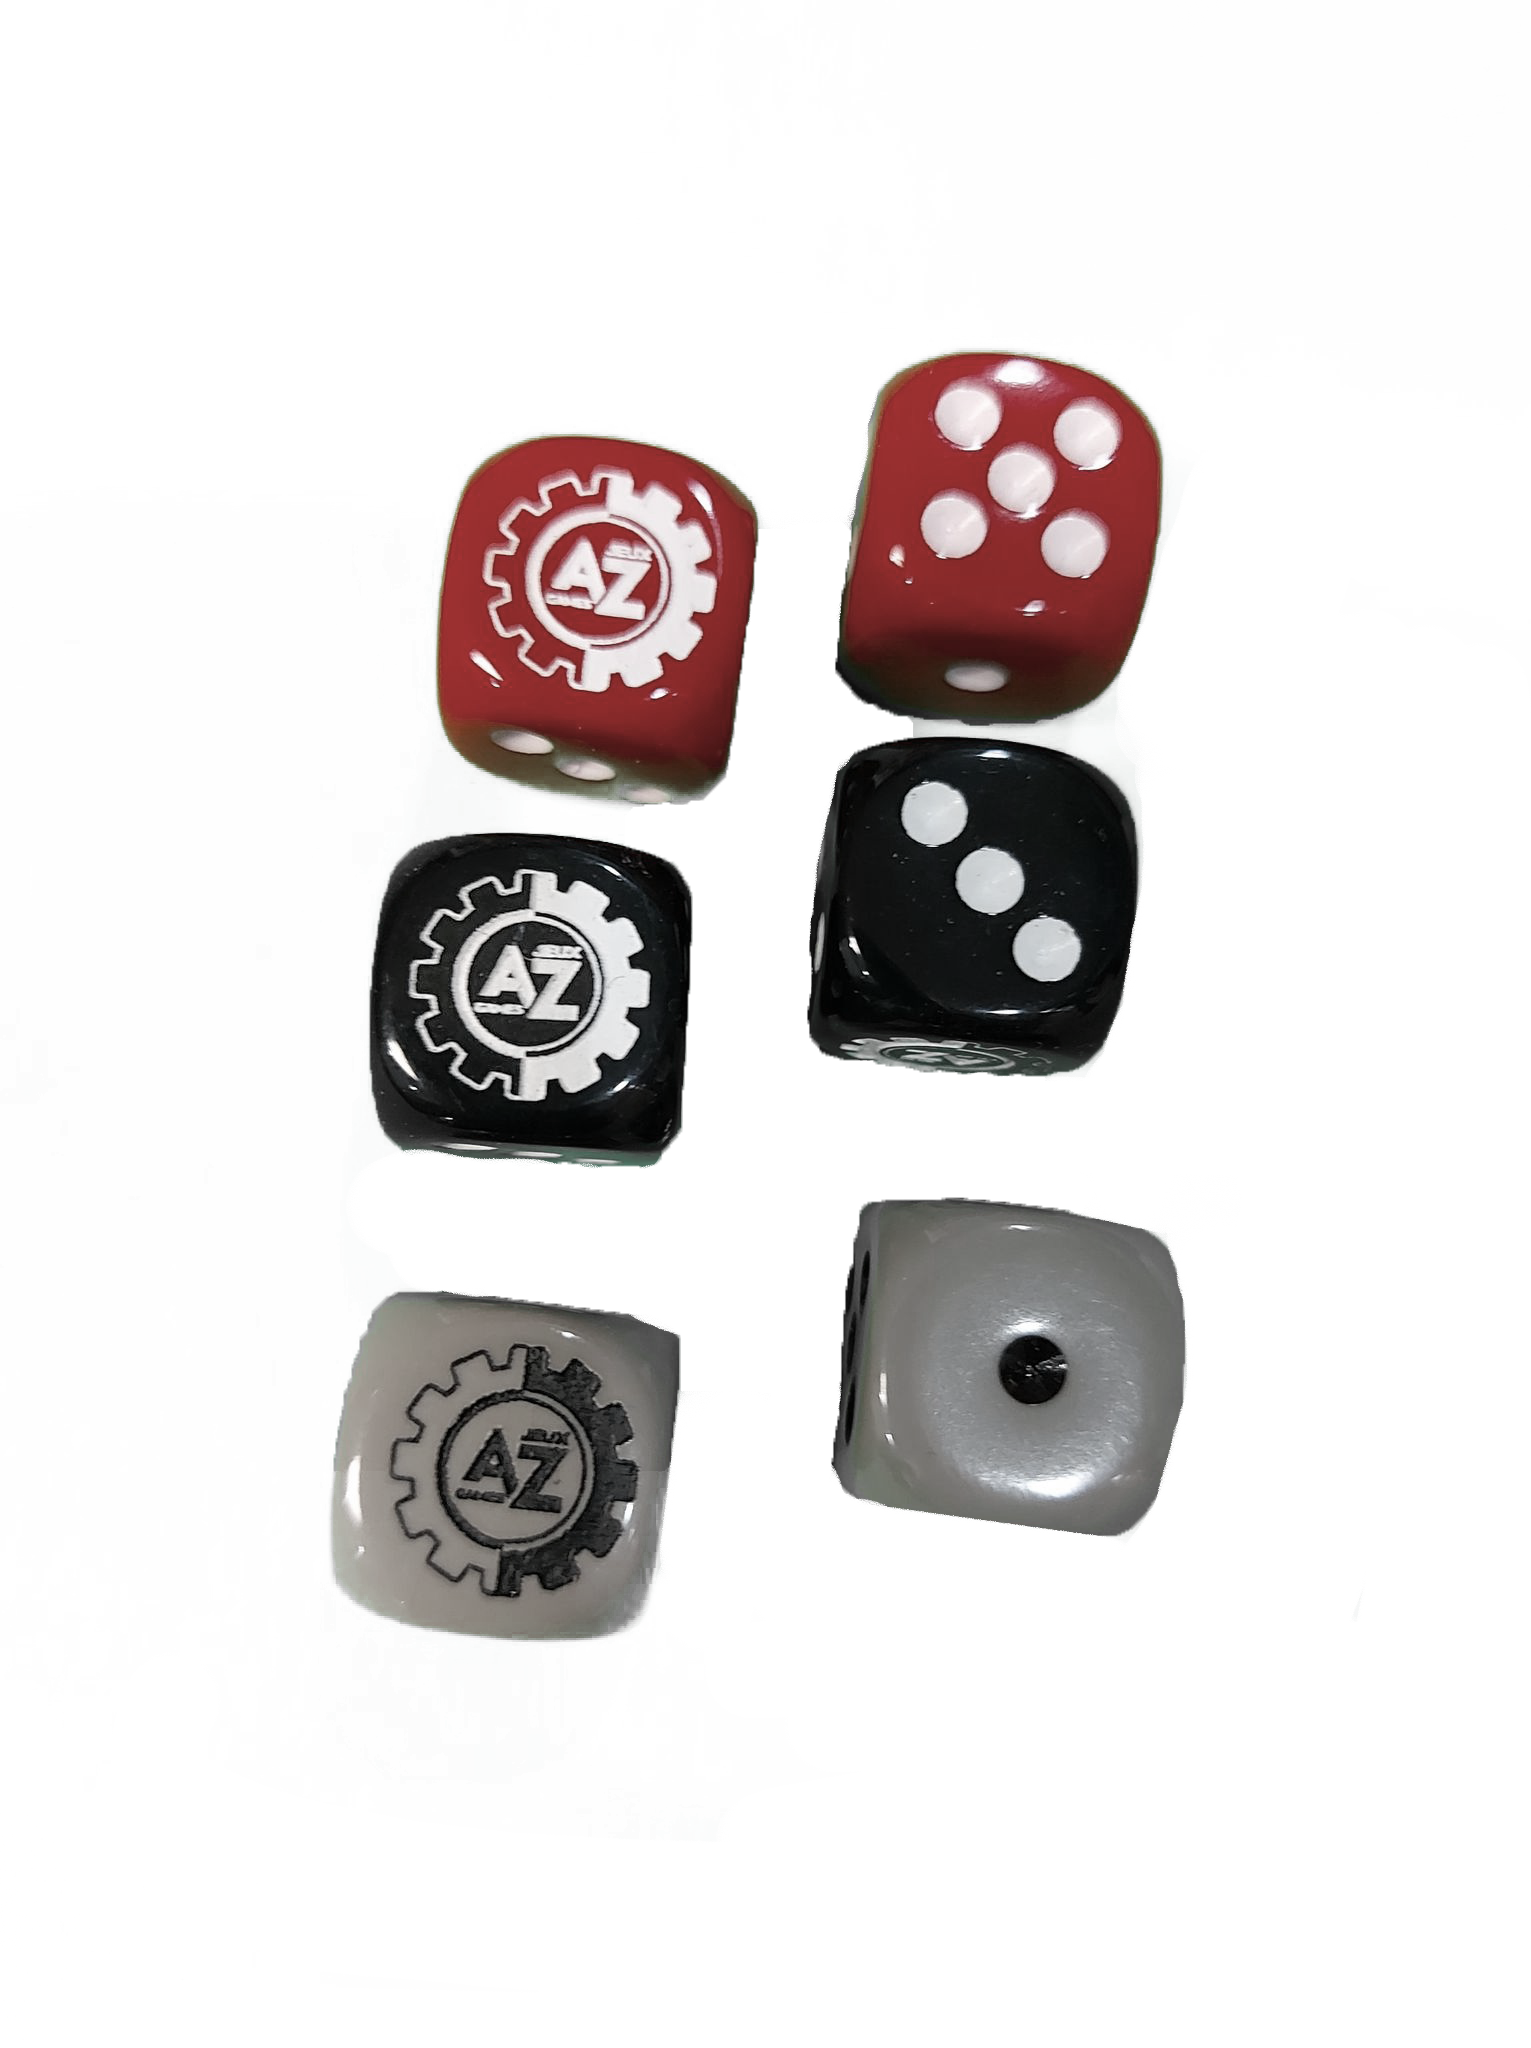 ** Jeux AZ Games ~ Dé à six faces (1) / Six sided die (1) **